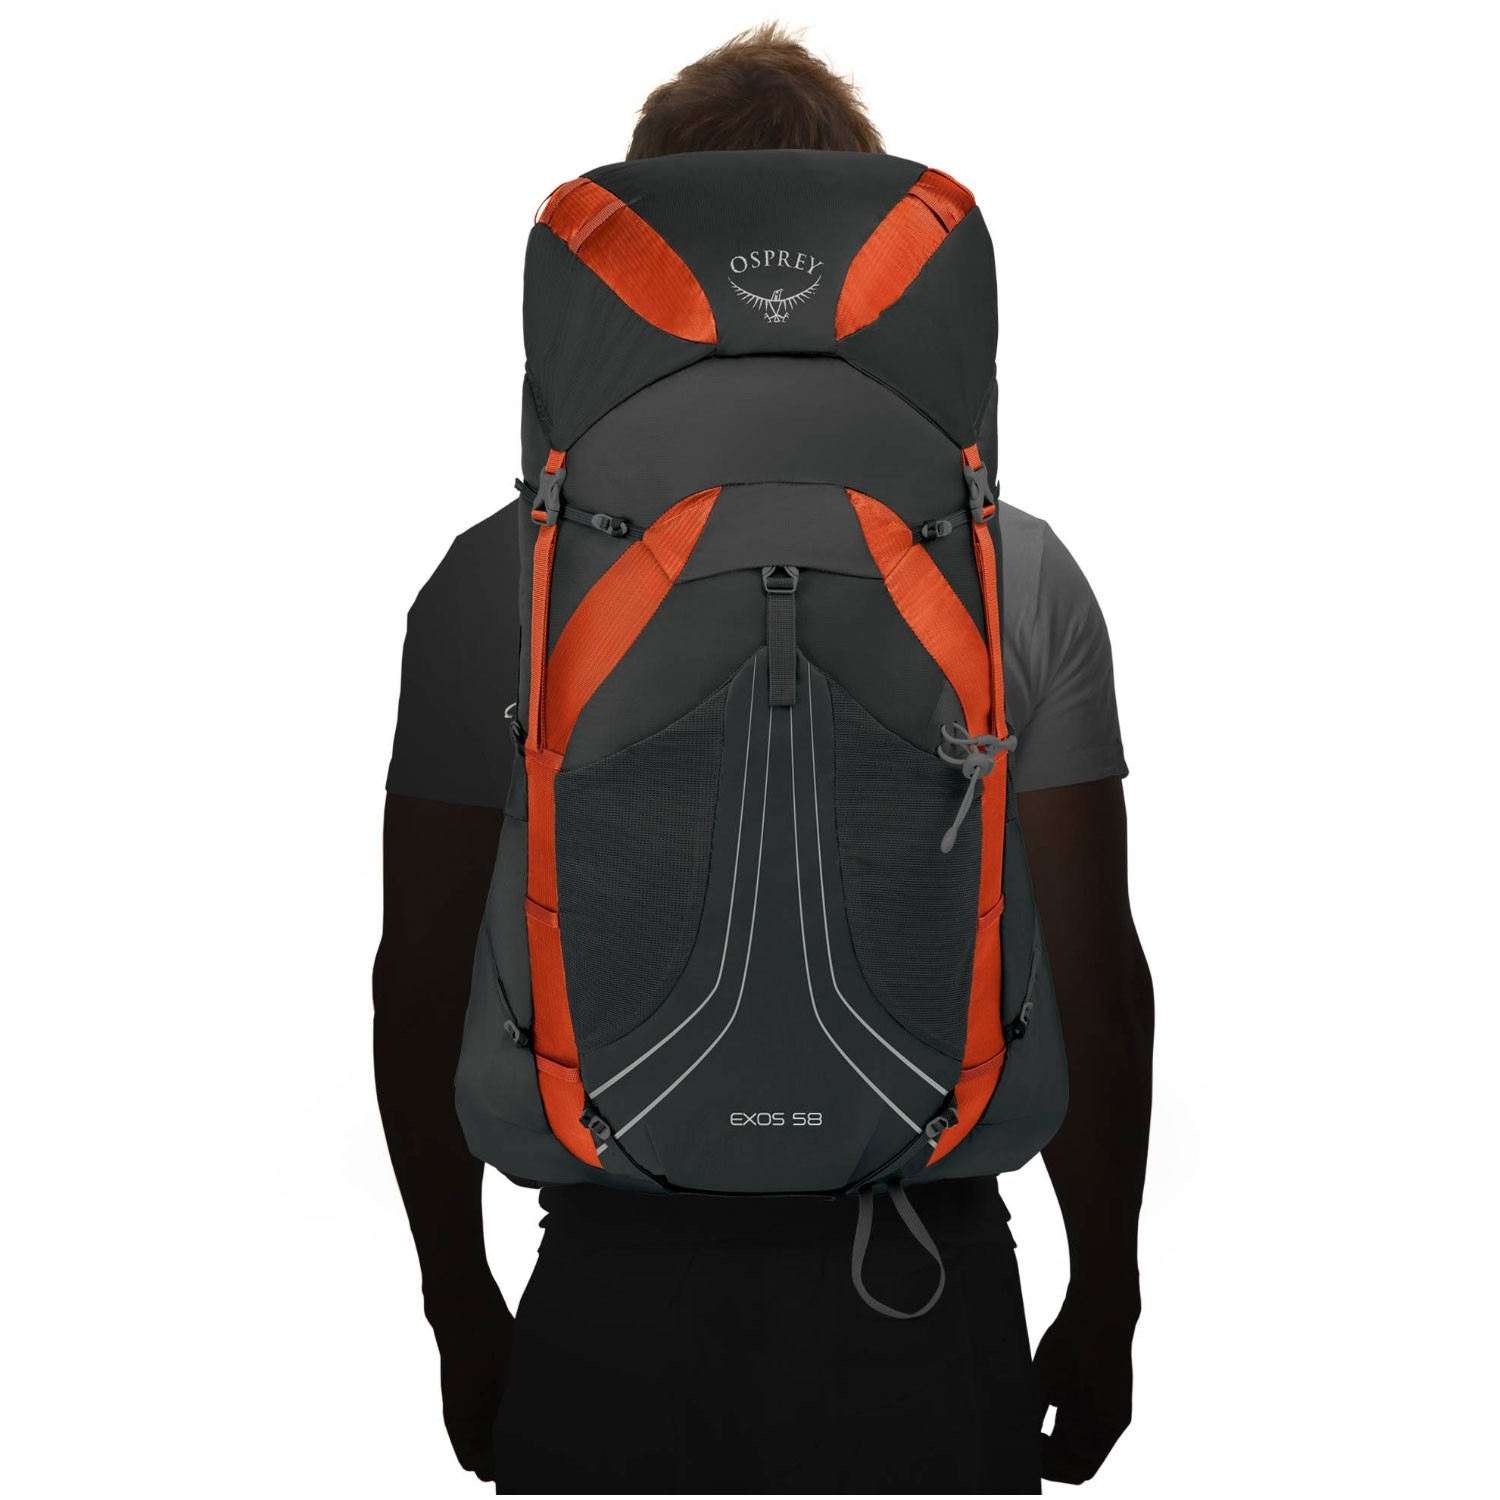 Osprey Exos 48 Trekking Rucksack - Blaze Black - on the body